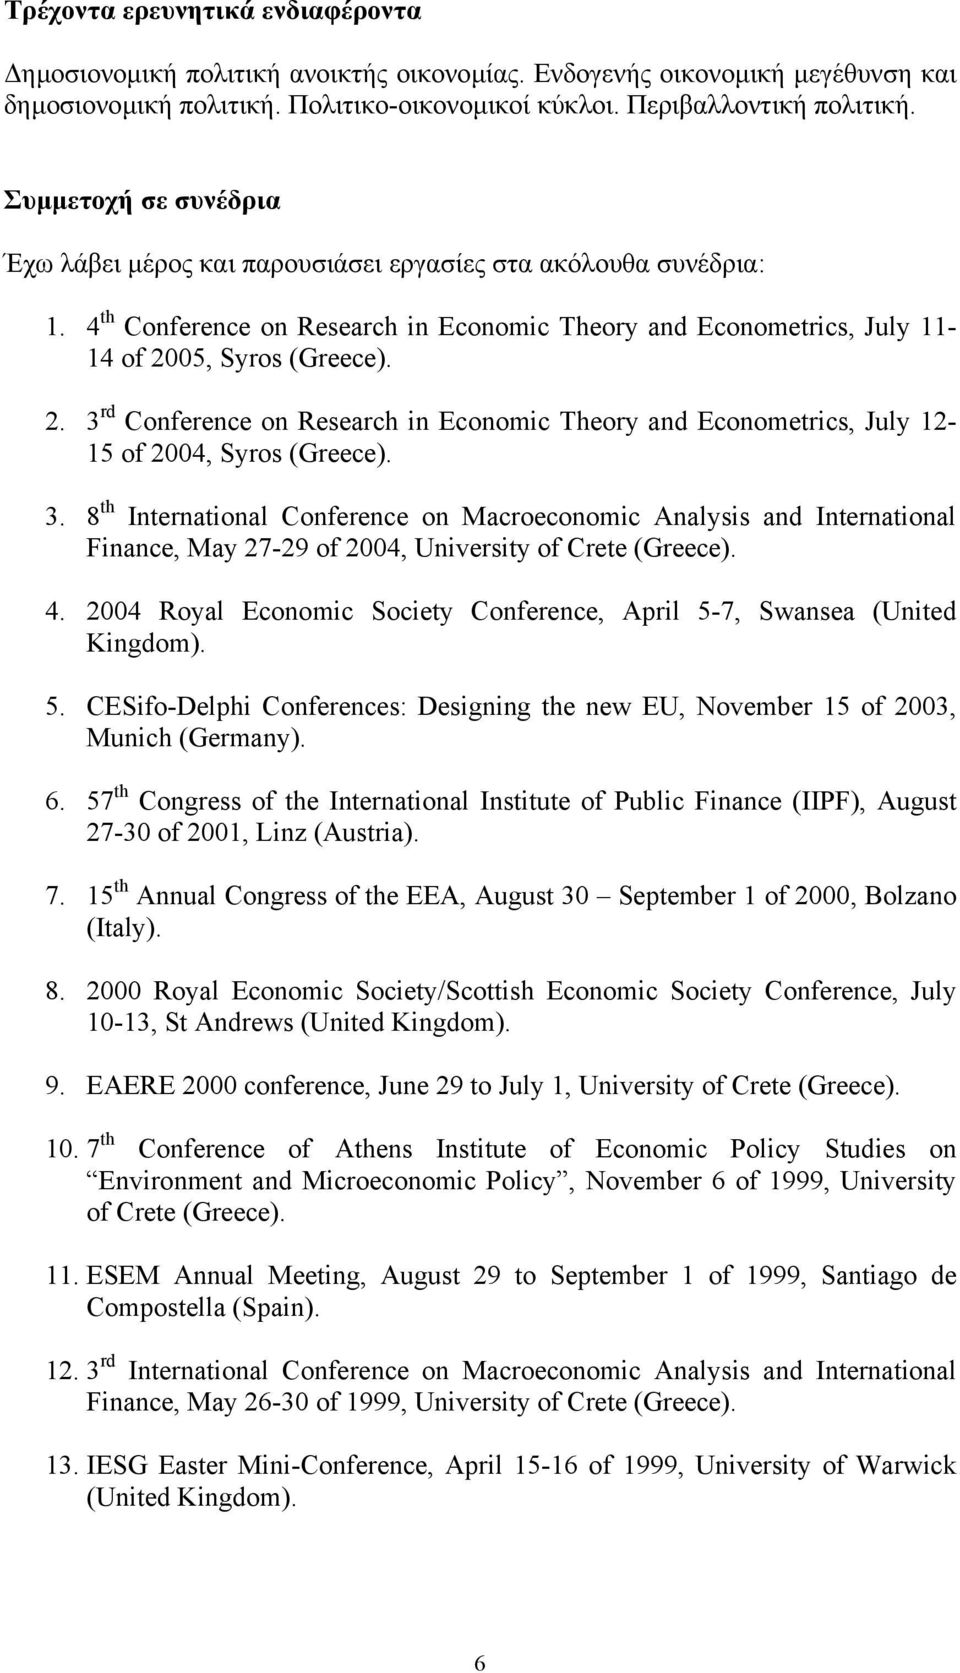 05, Syros (Greece). 2. 3 rd Conference on Research in Economic Theory and Econometrics, July 12-15 of 2004, Syros (Greece). 3. 8 th International Conference on Macroeconomic Analysis and International Finance, May 27-29 of 2004, University of Crete (Greece).